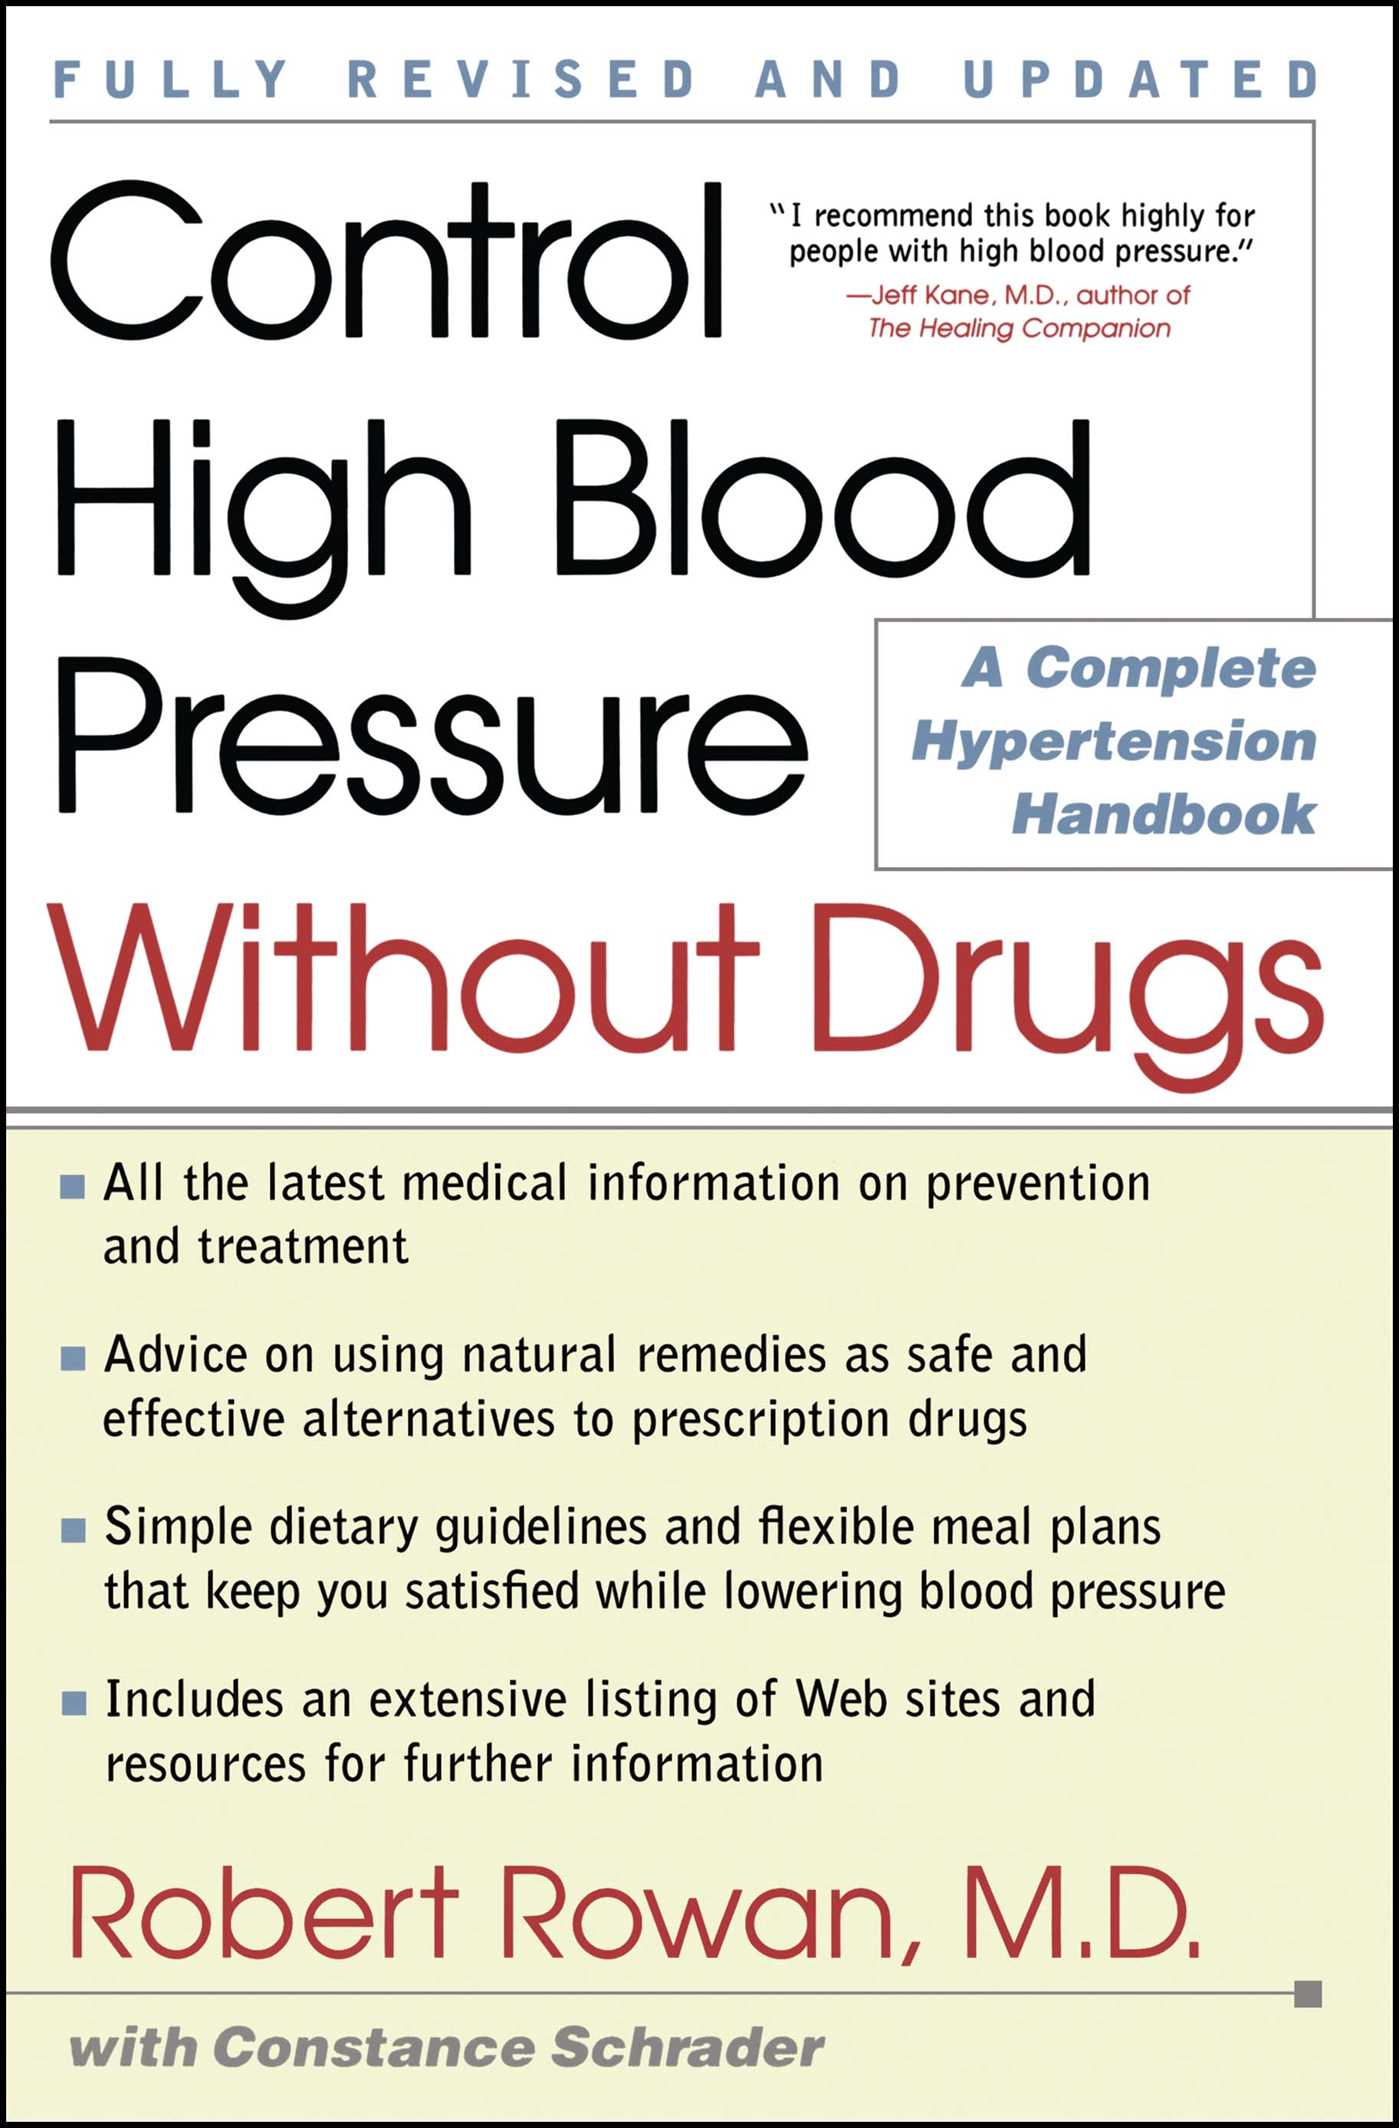 Control high blood pressure without drugs 9780684873282 hr